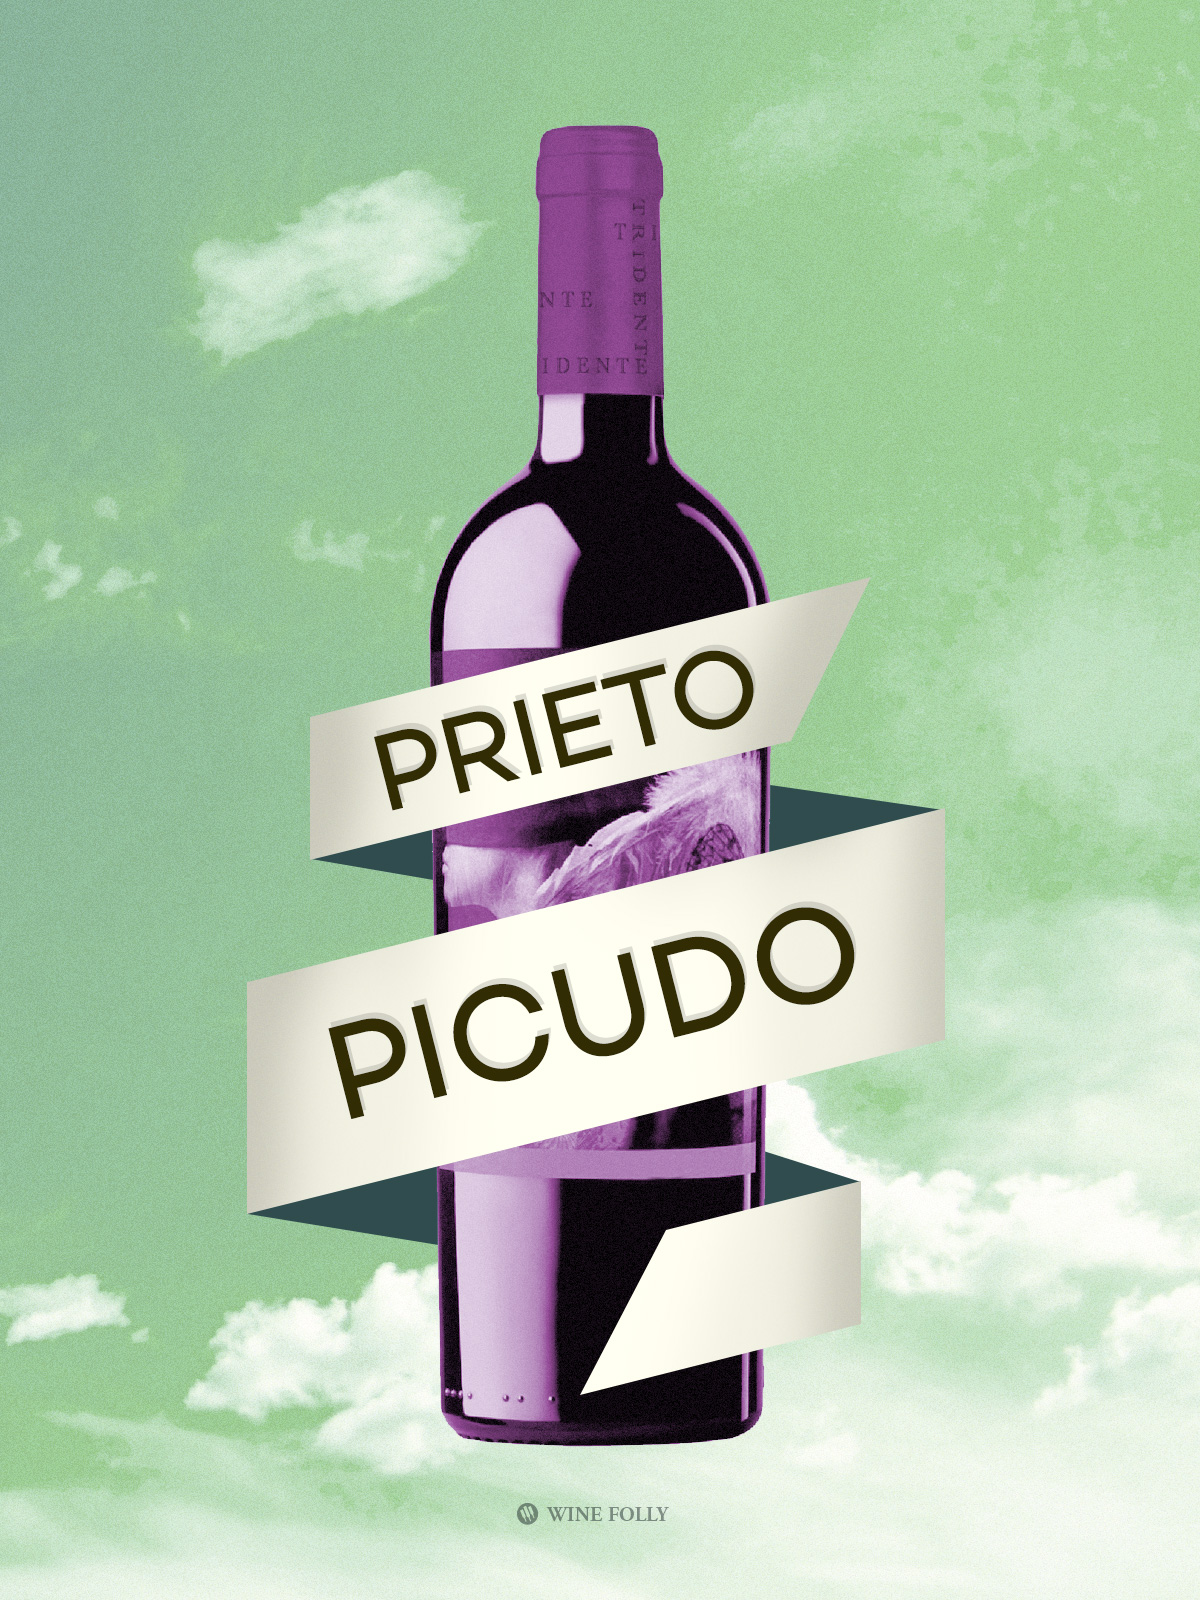 Prieto-picudo-wine-folly